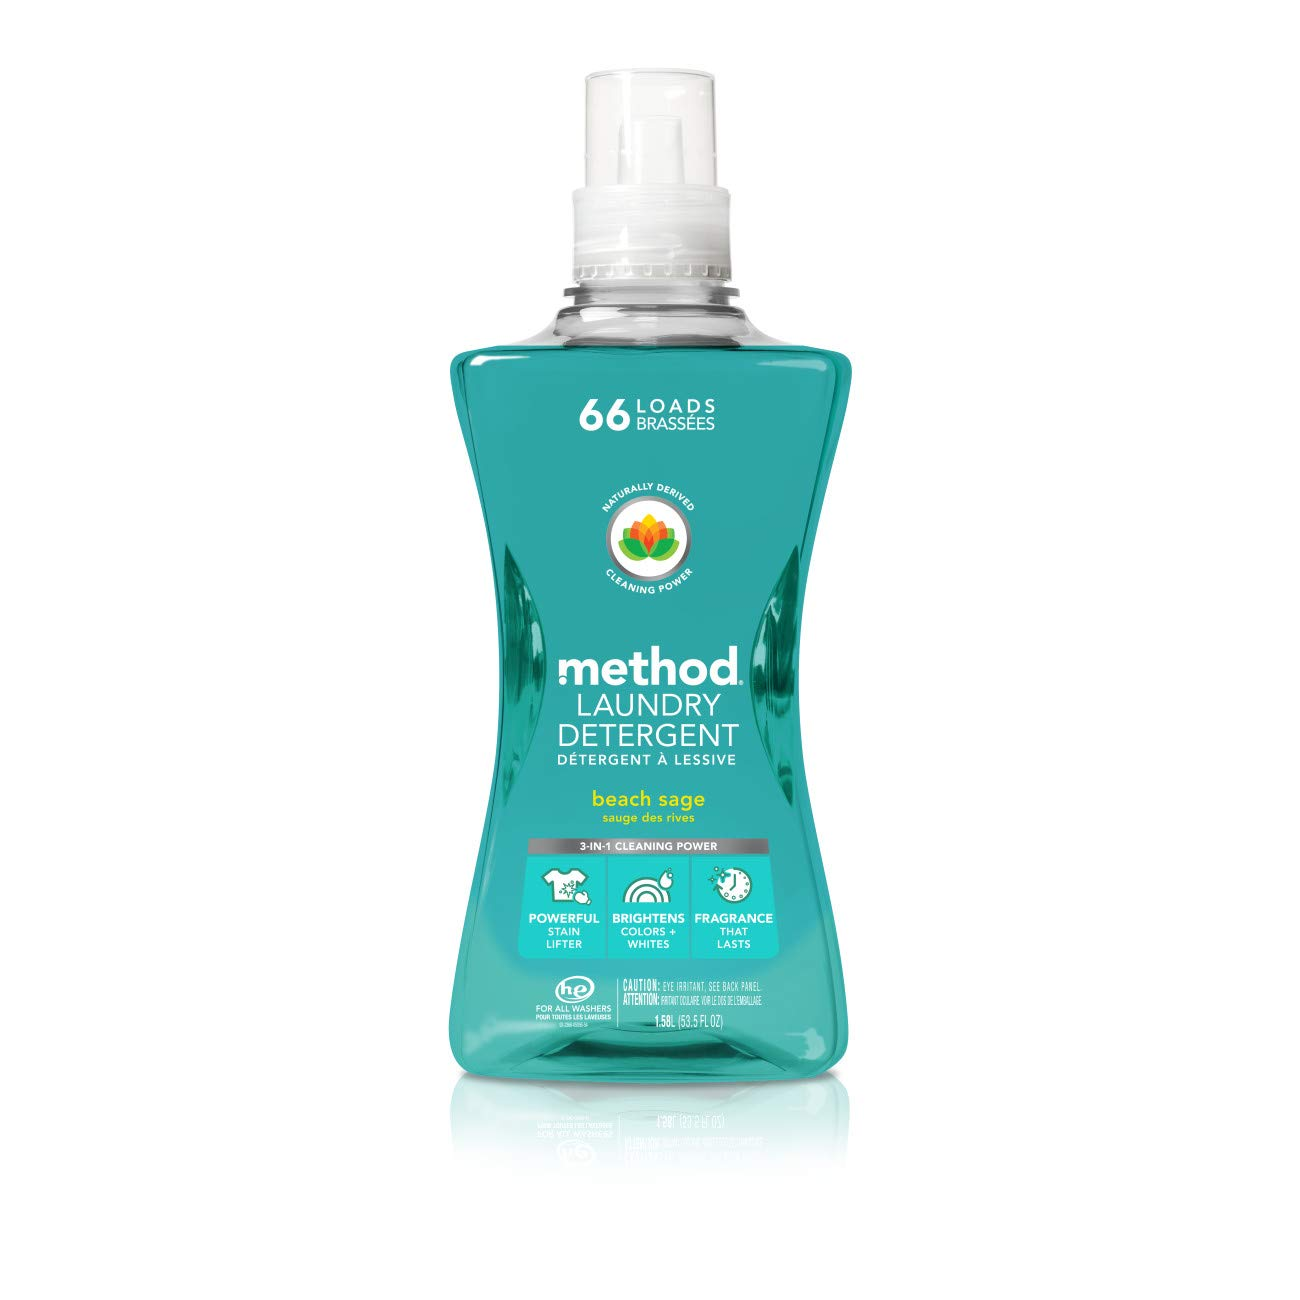 Method Laundry Detergent, Beach Sage, 53.5 Ounces, 66 Loads